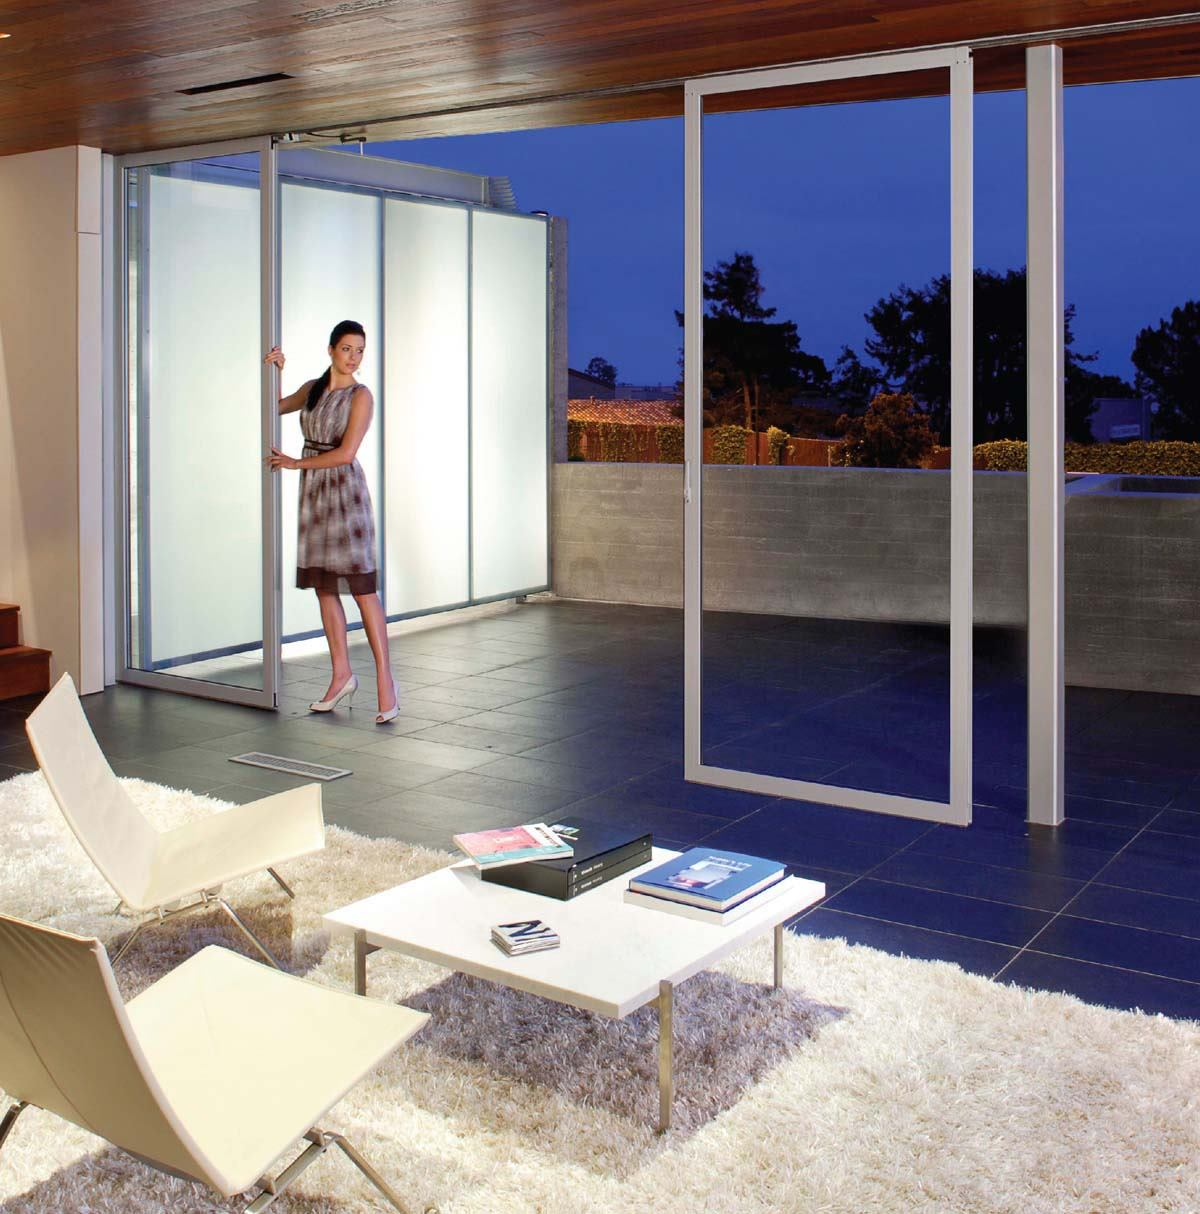 Nanawall individual panel sliding glass door system for Sliding glass wall systems